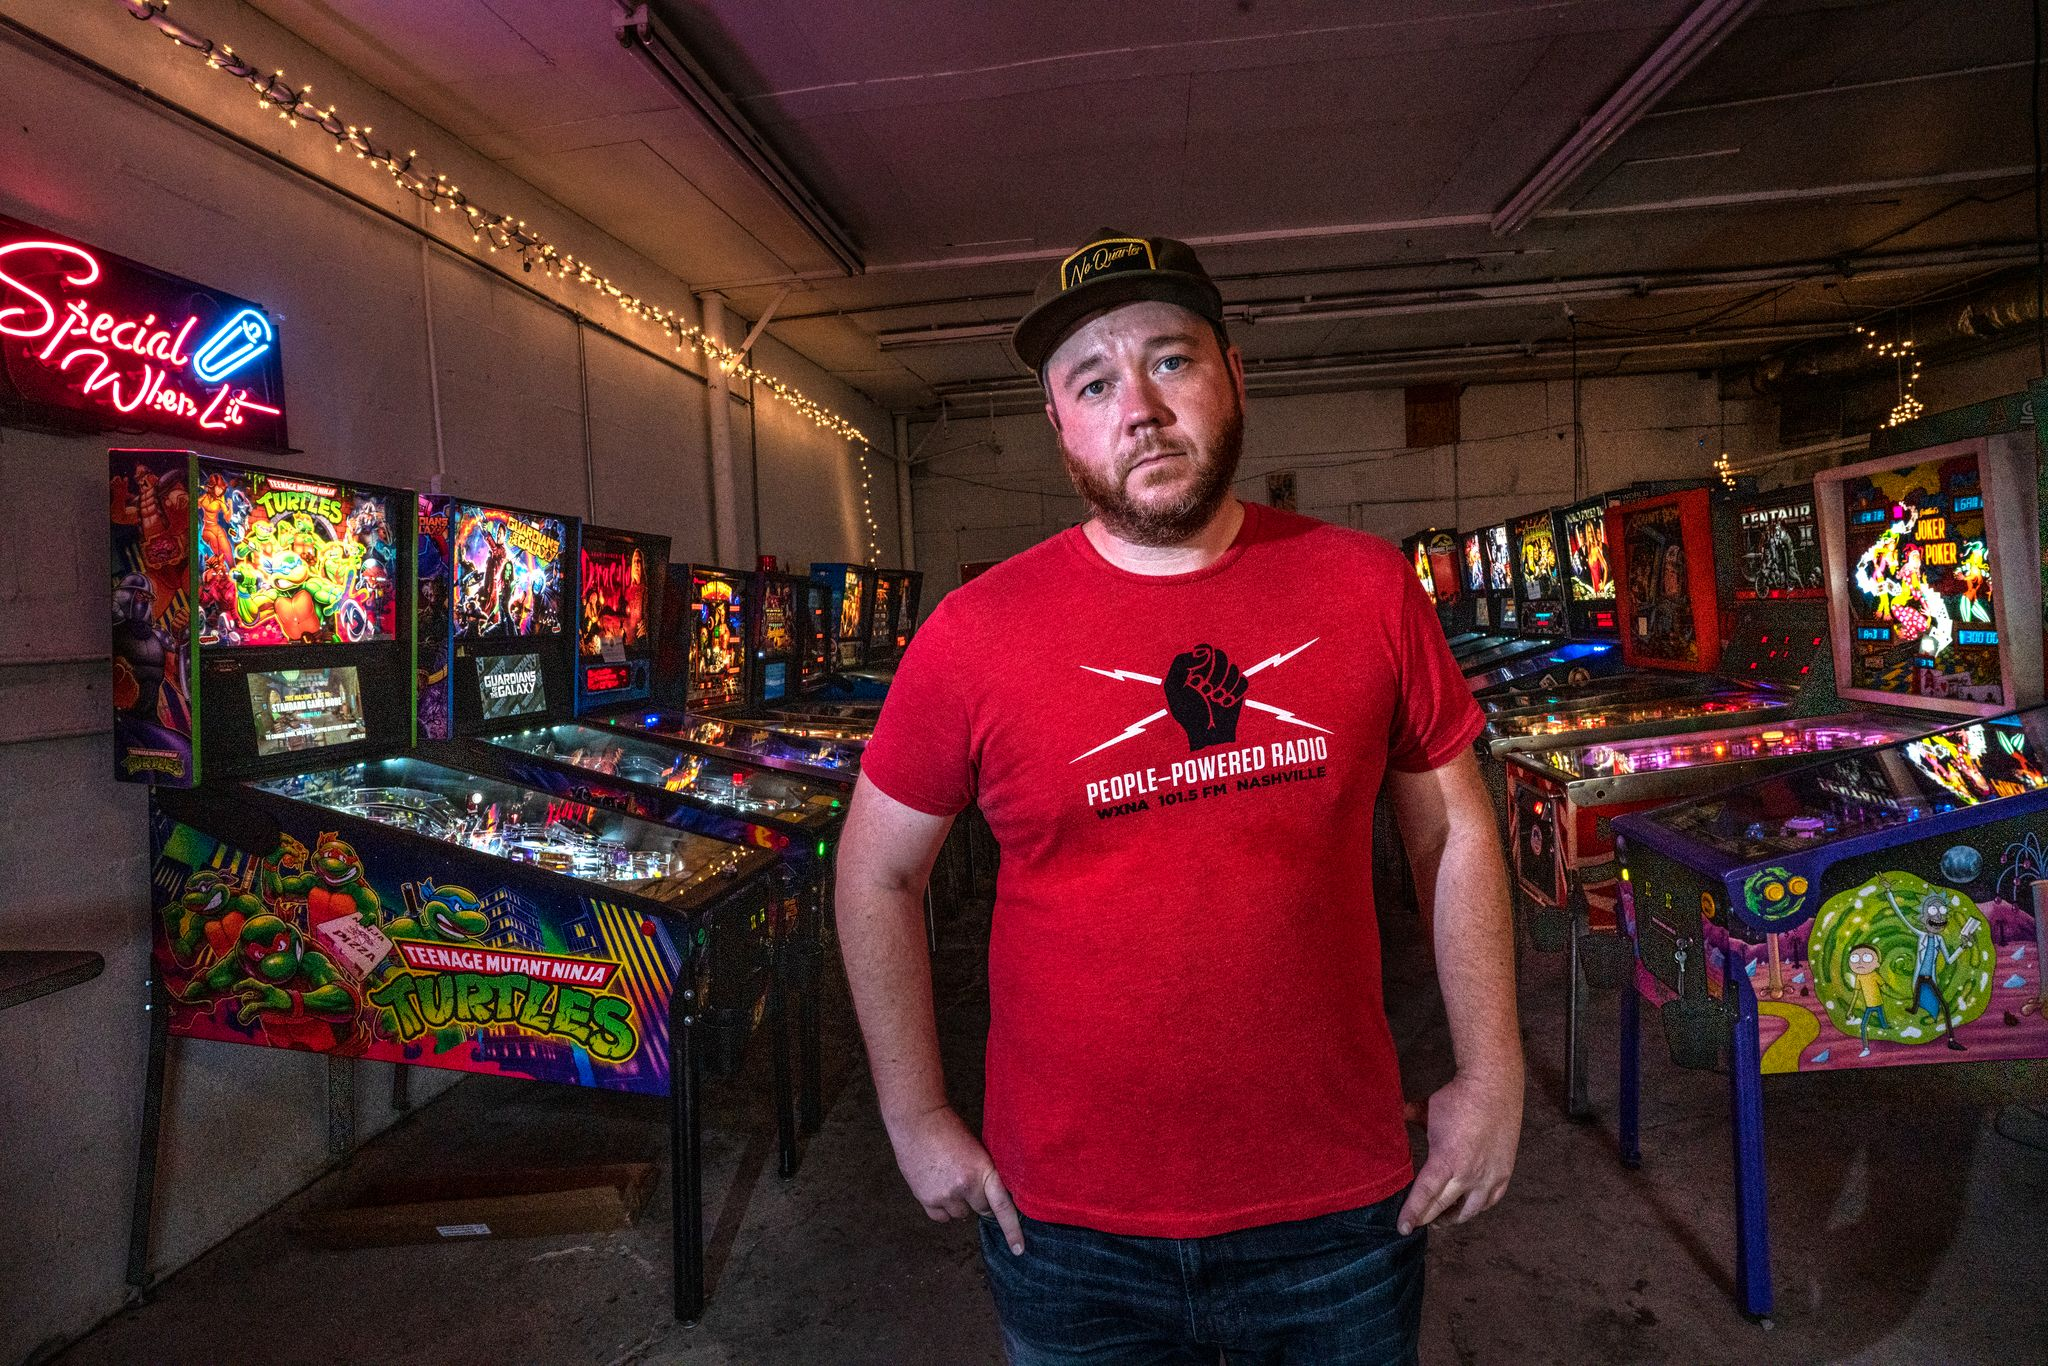 Meet the East Nashville bar owner who became a COVID-19 stats watchdog